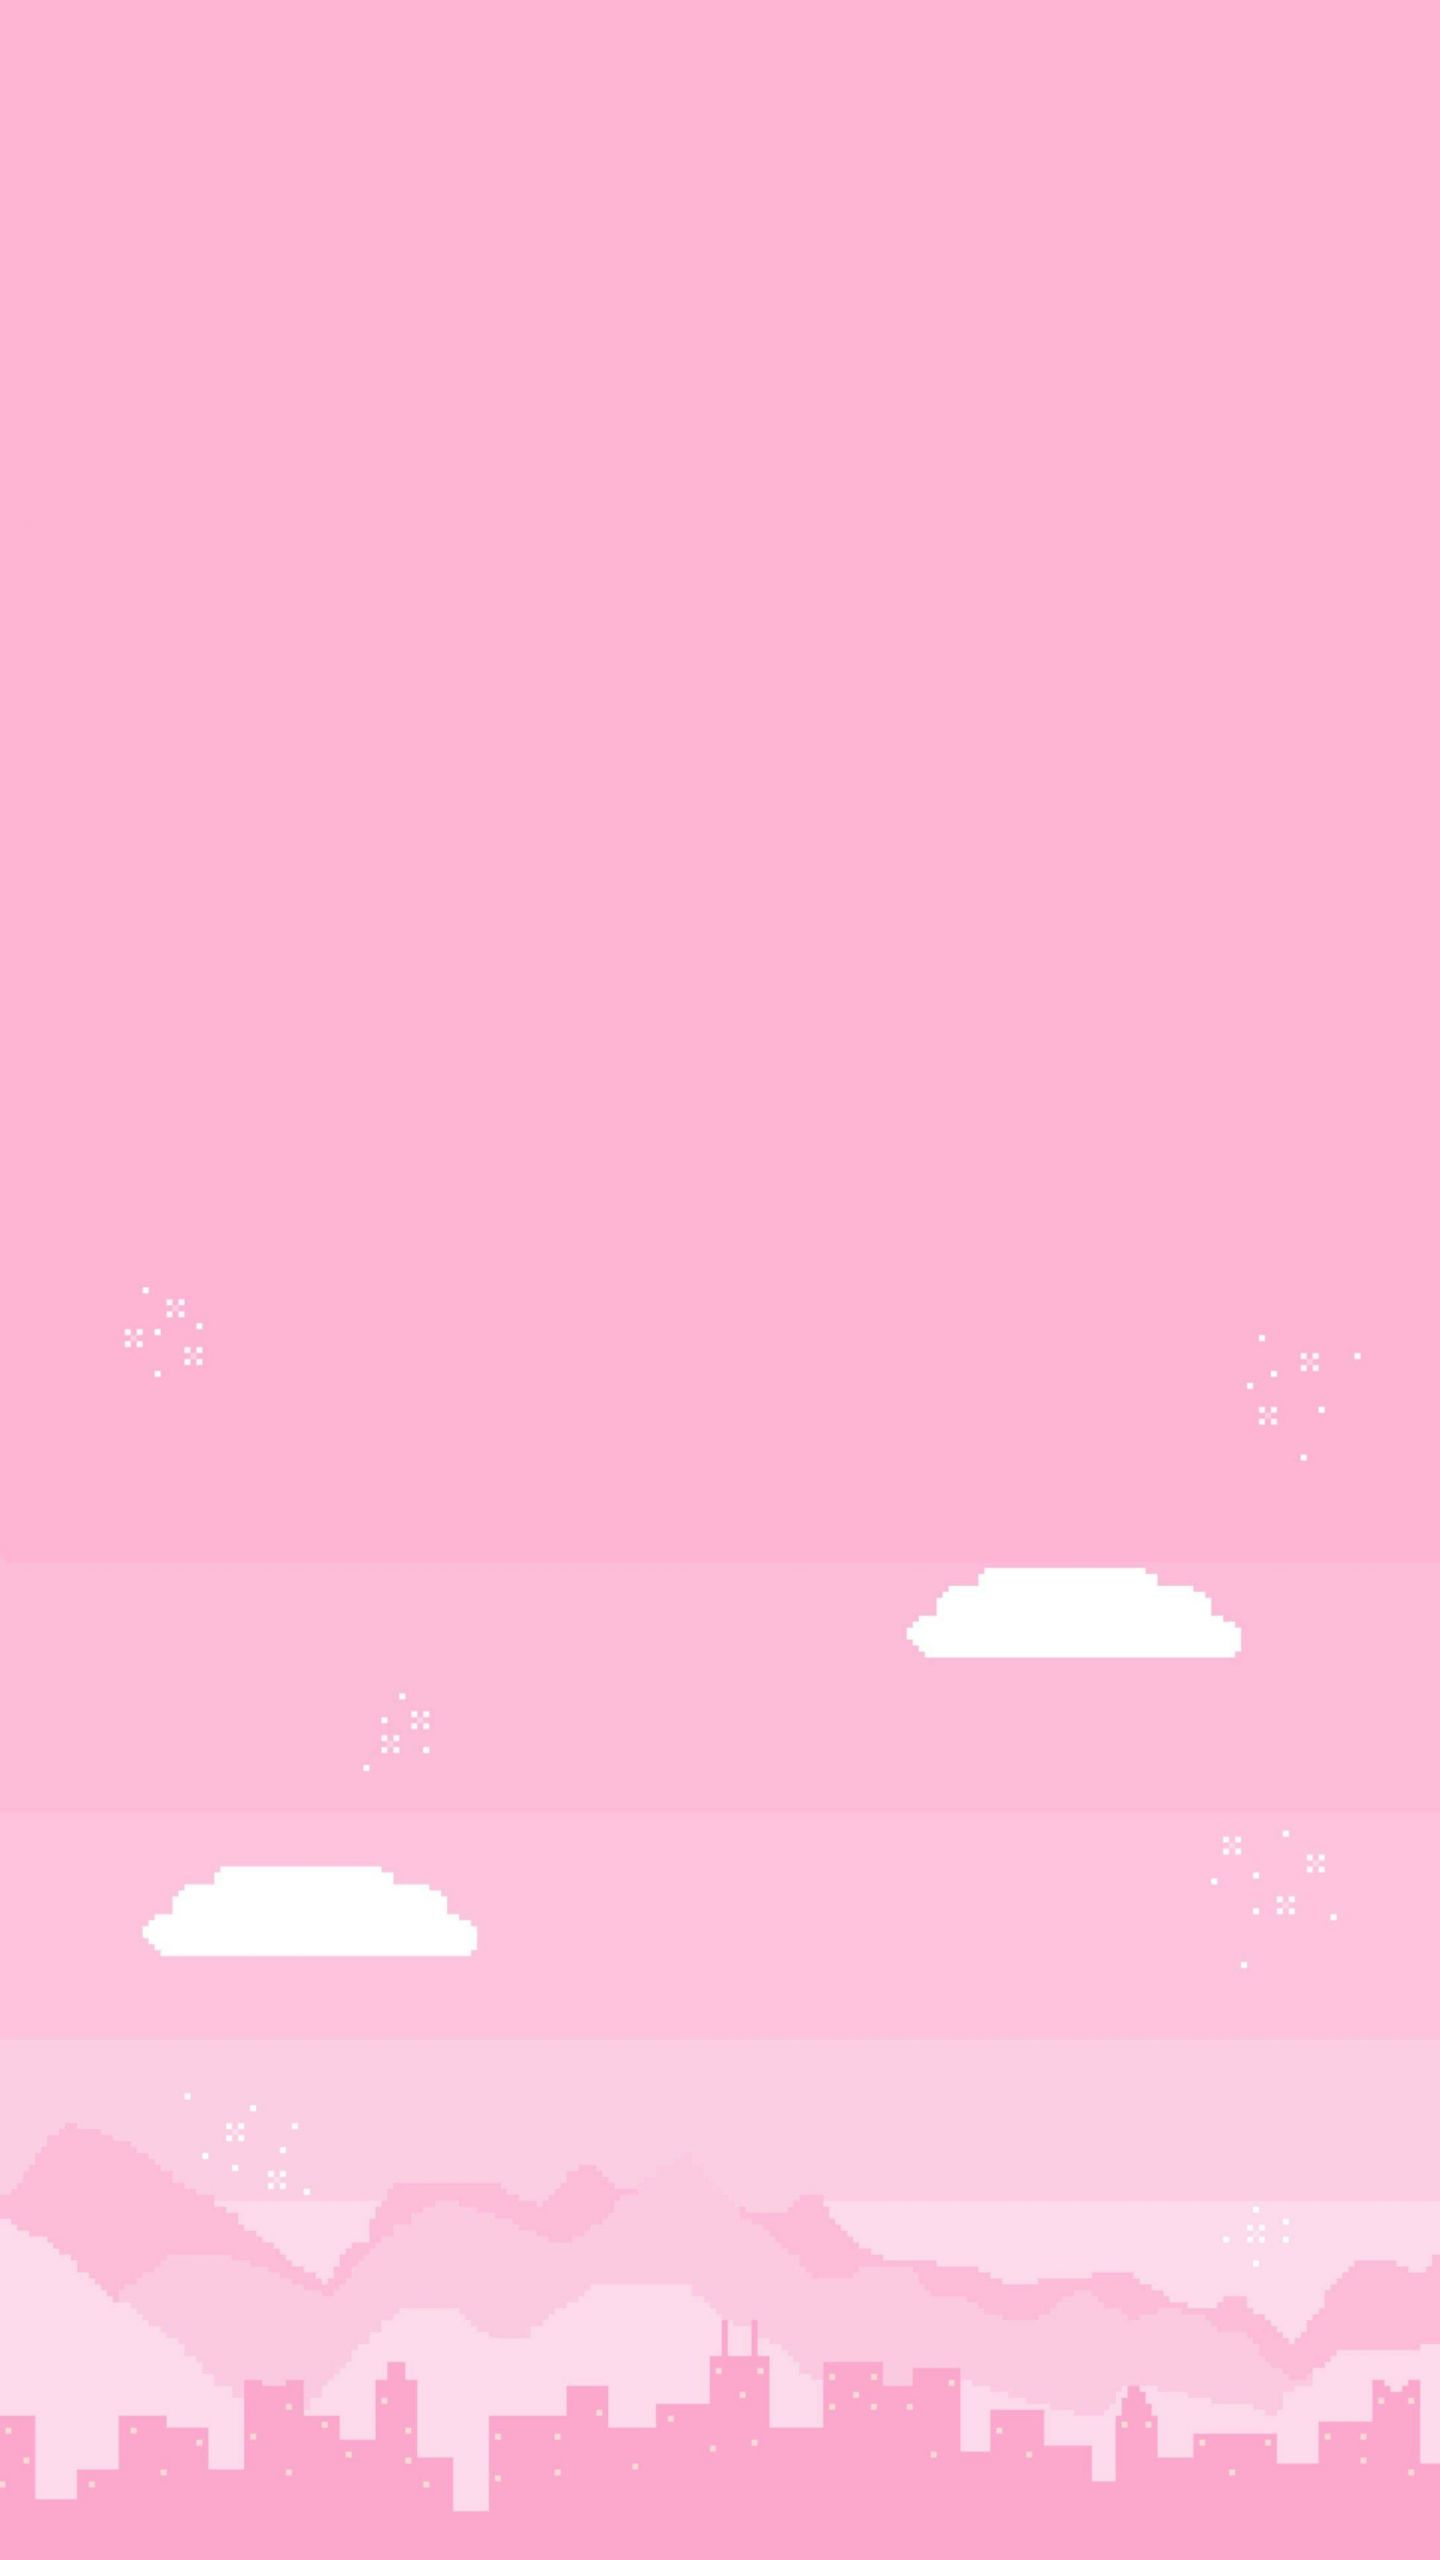 Pink Aesthetic Wallpaper Backgrounds Lovely Pink Aesthetic